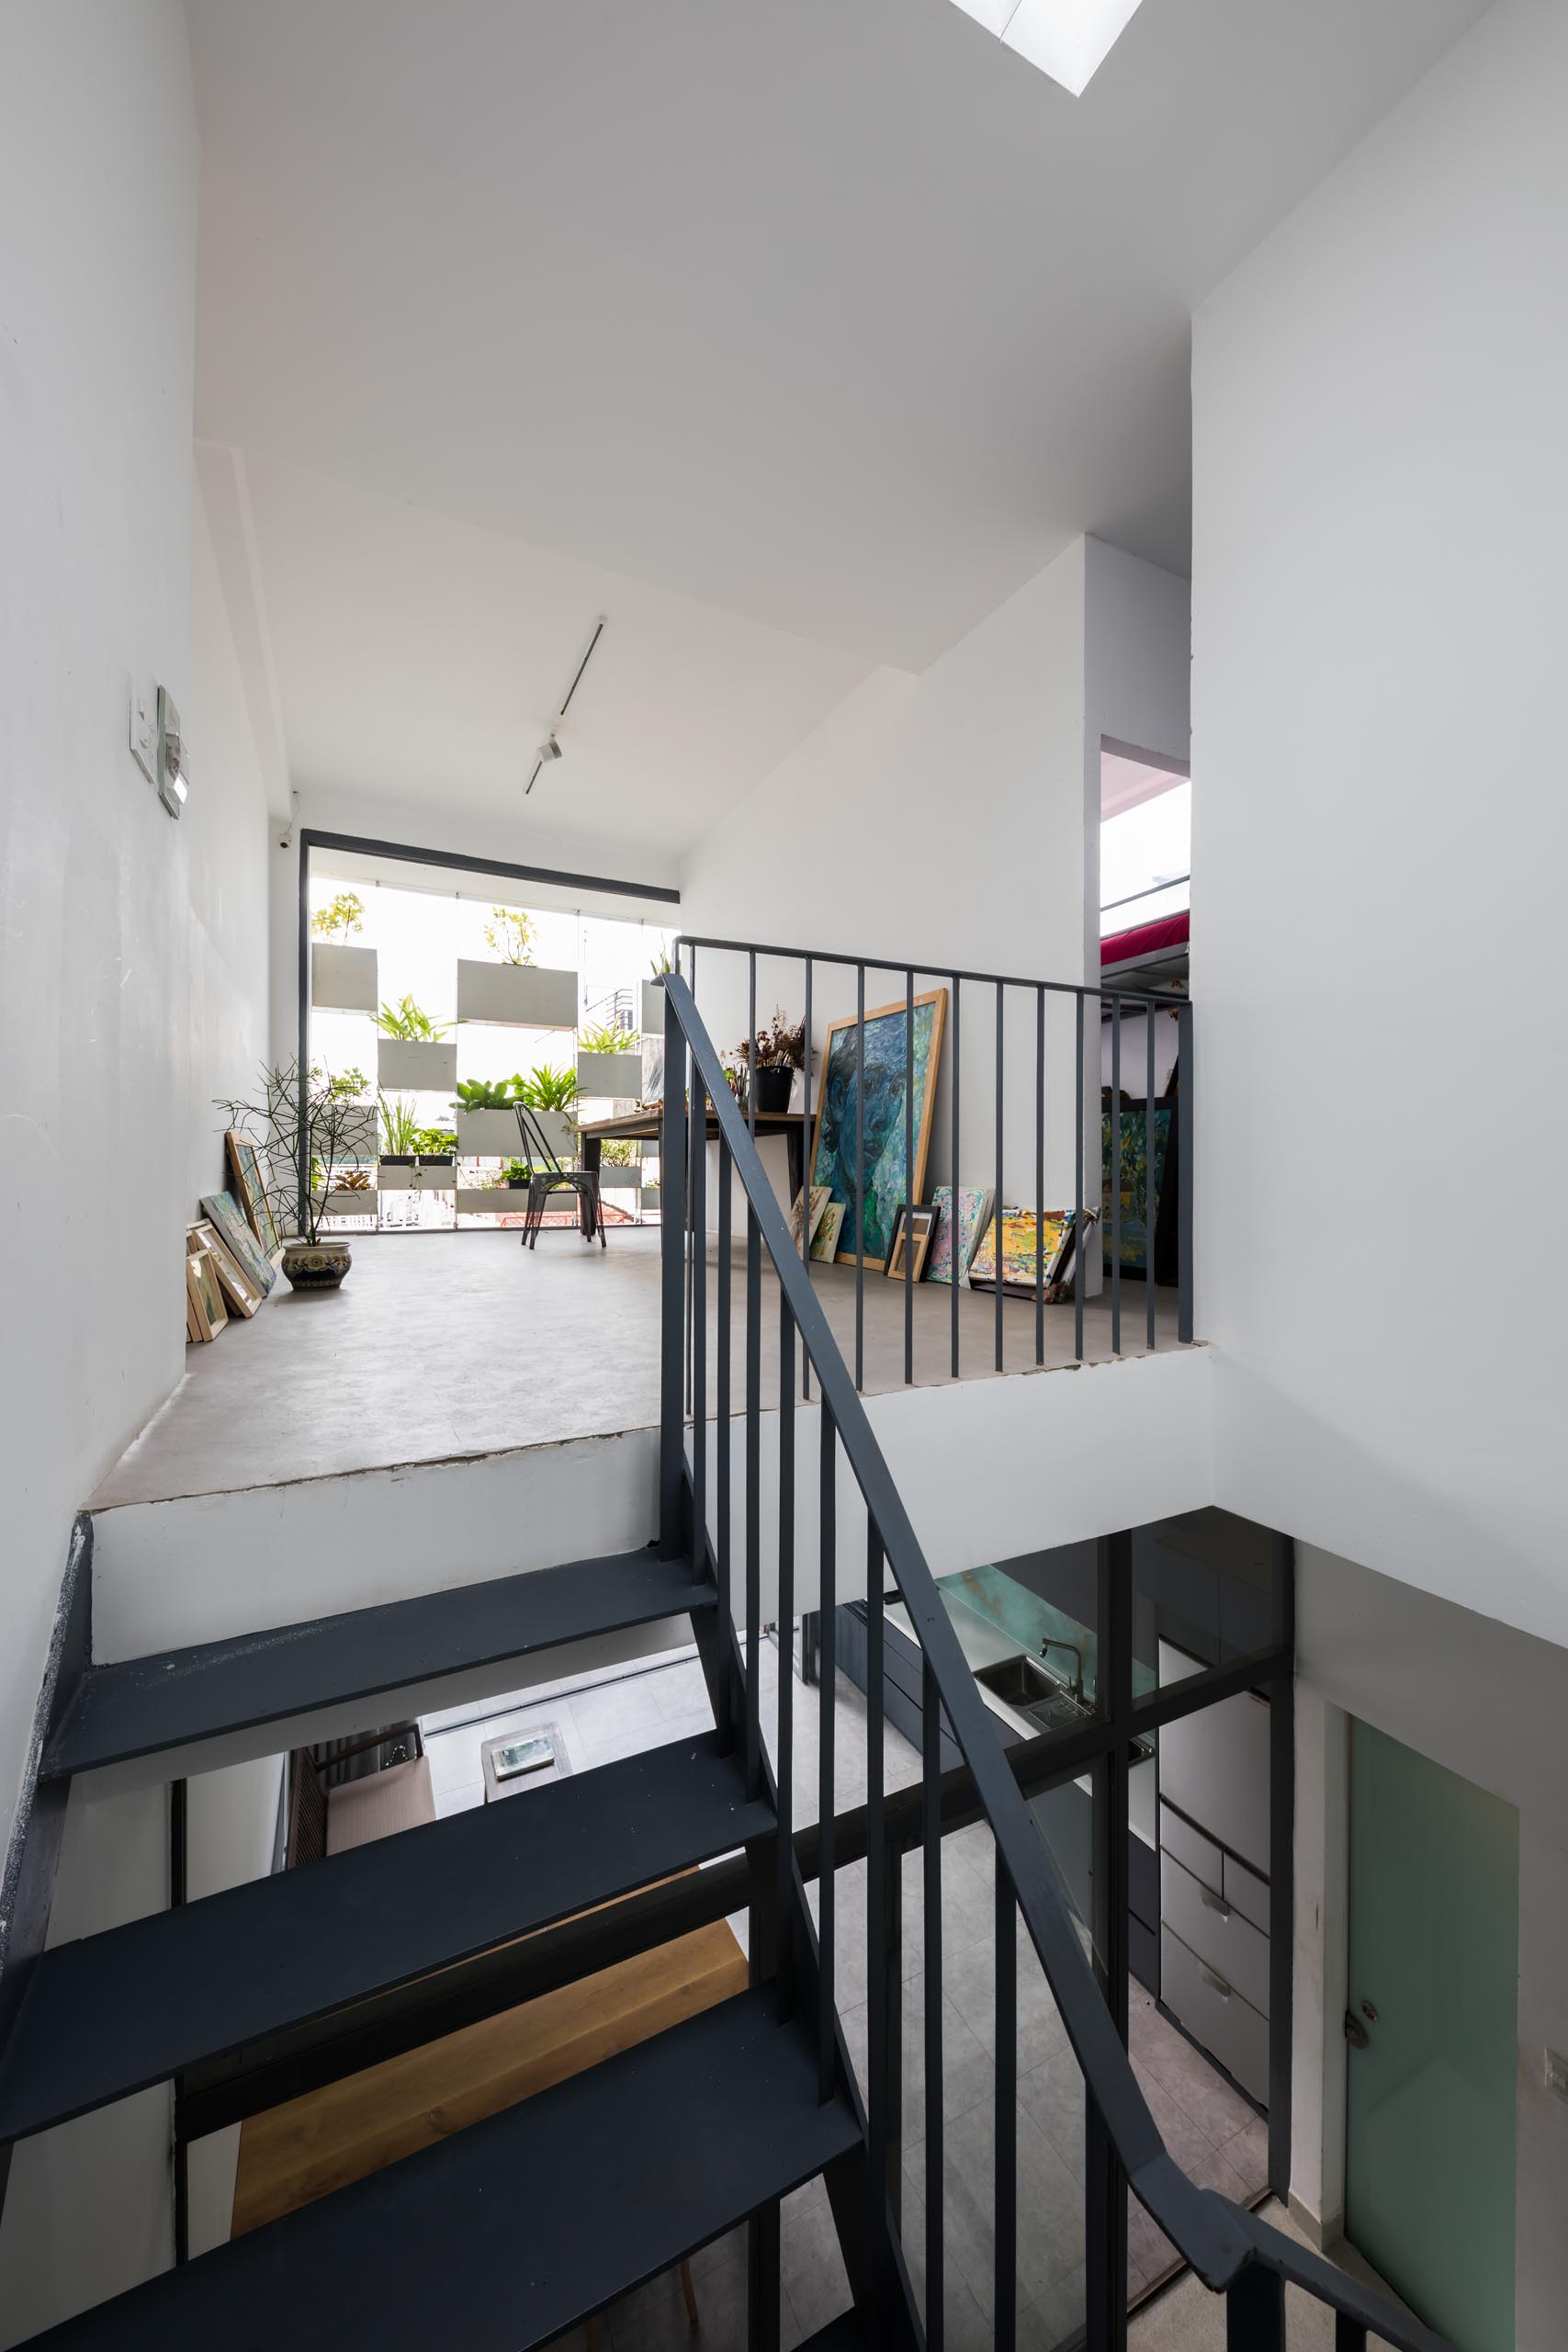 At the top of stairs in this modern home, there's an art studio with simple white walls and space for creating.